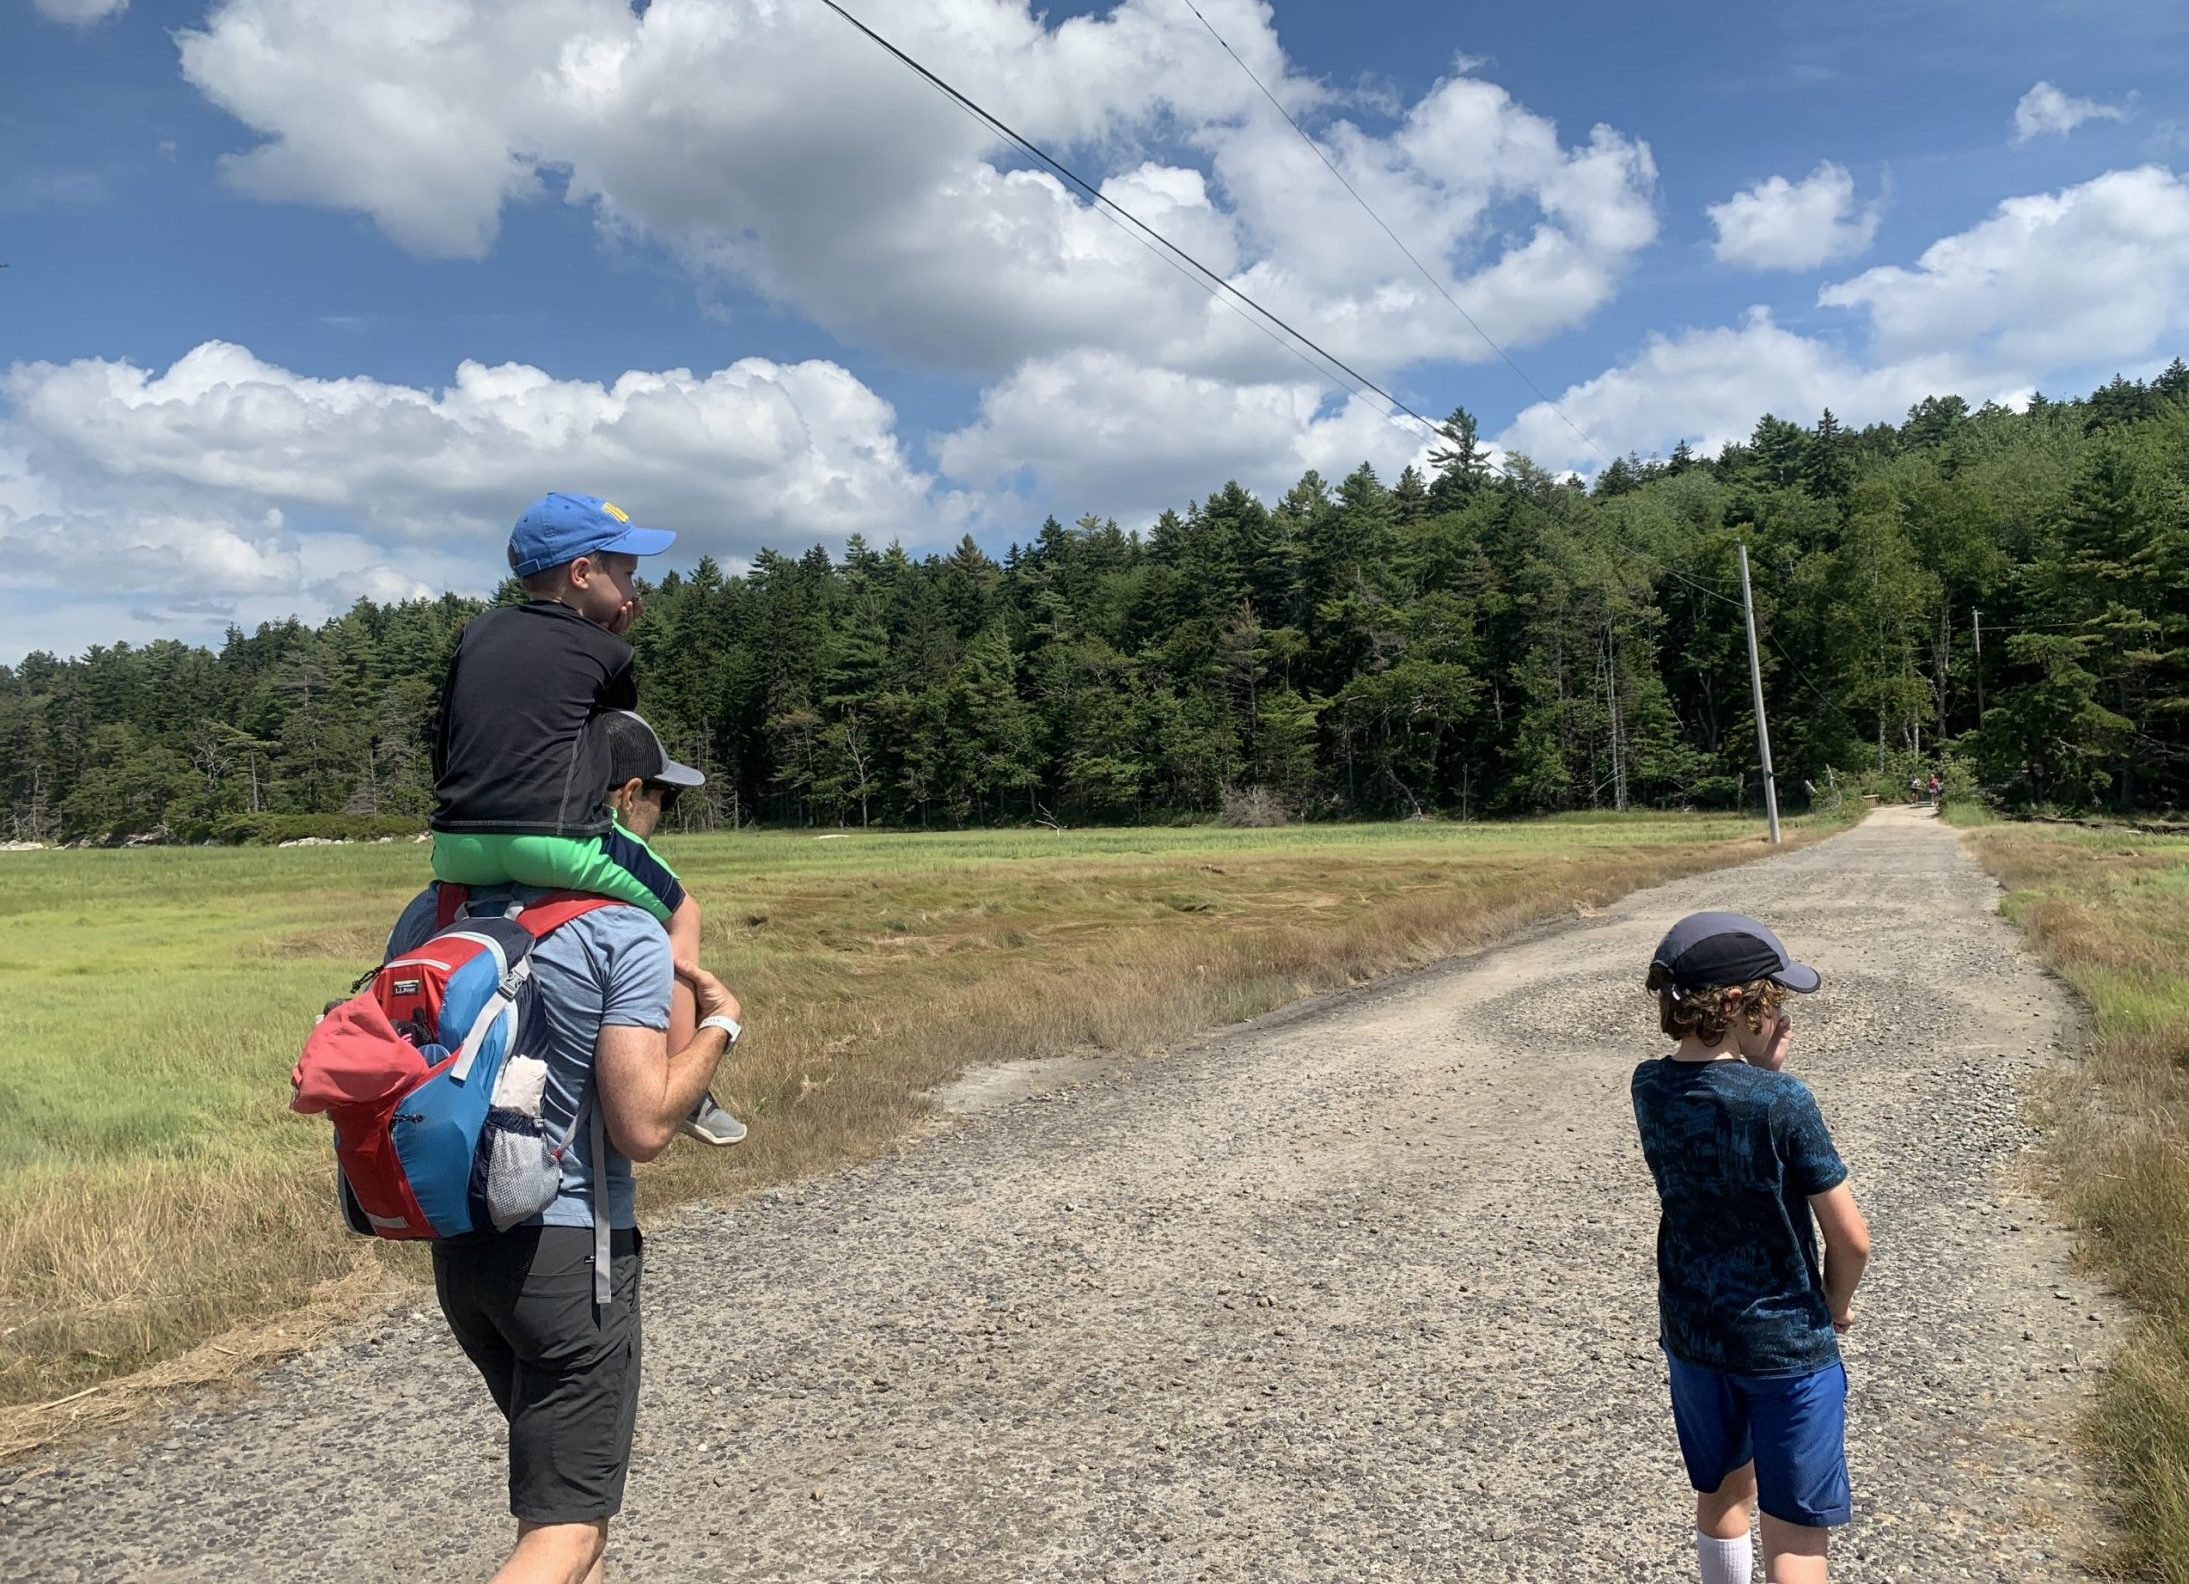 Partner and sons of DC widow blog writer Marjorie Brimley walk in a field